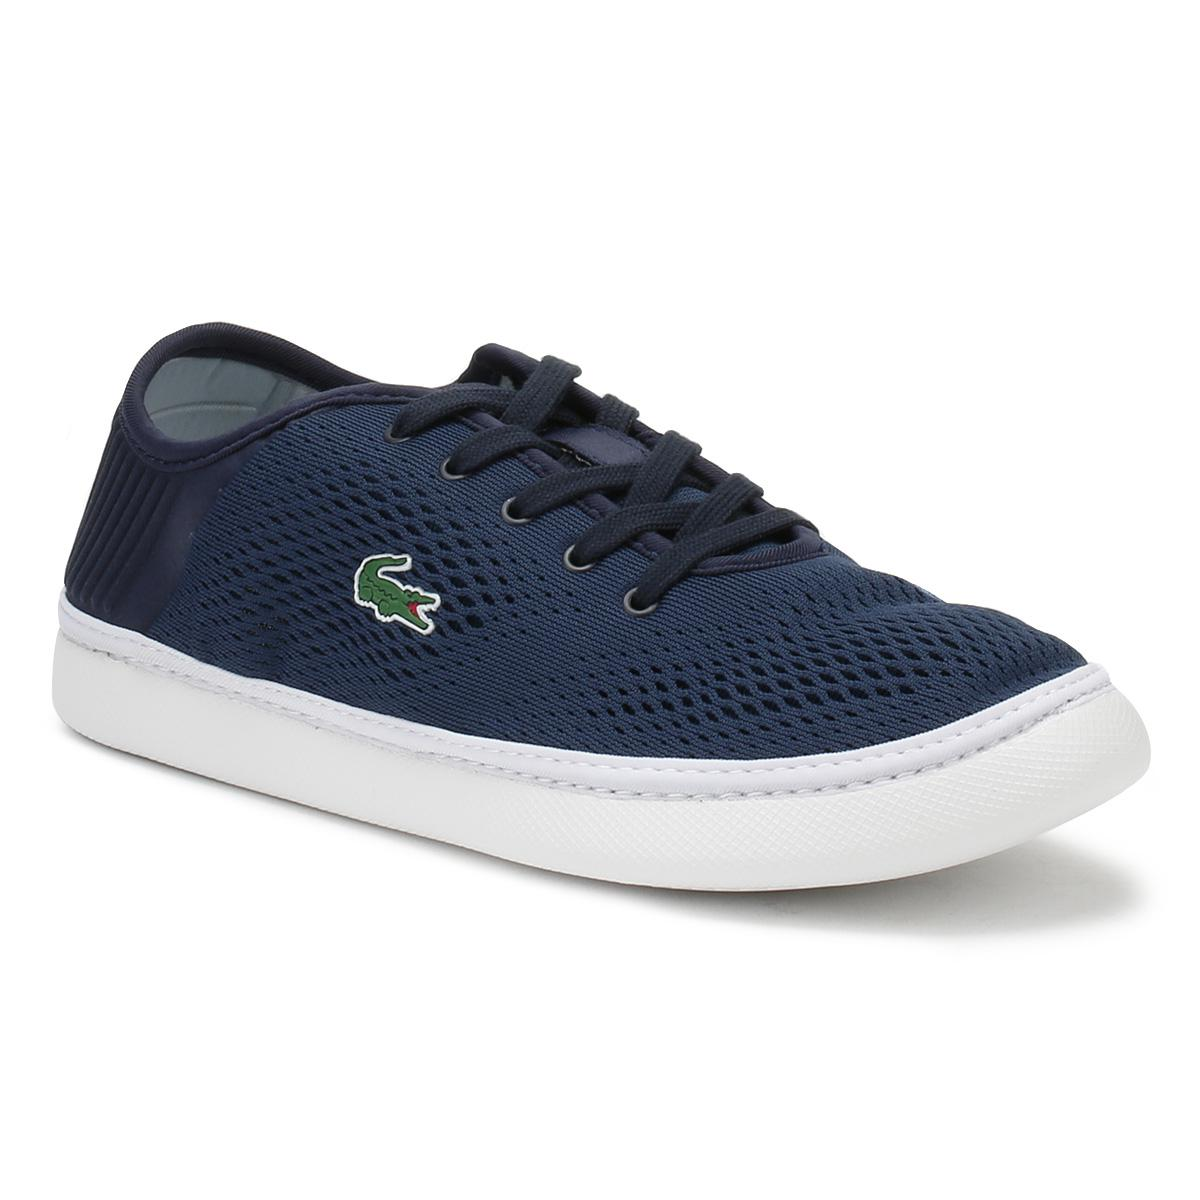 c31a4451a Lyst - Lacoste Mens Navy   White L.ydro Lace 118 1 Trainers in Blue ...